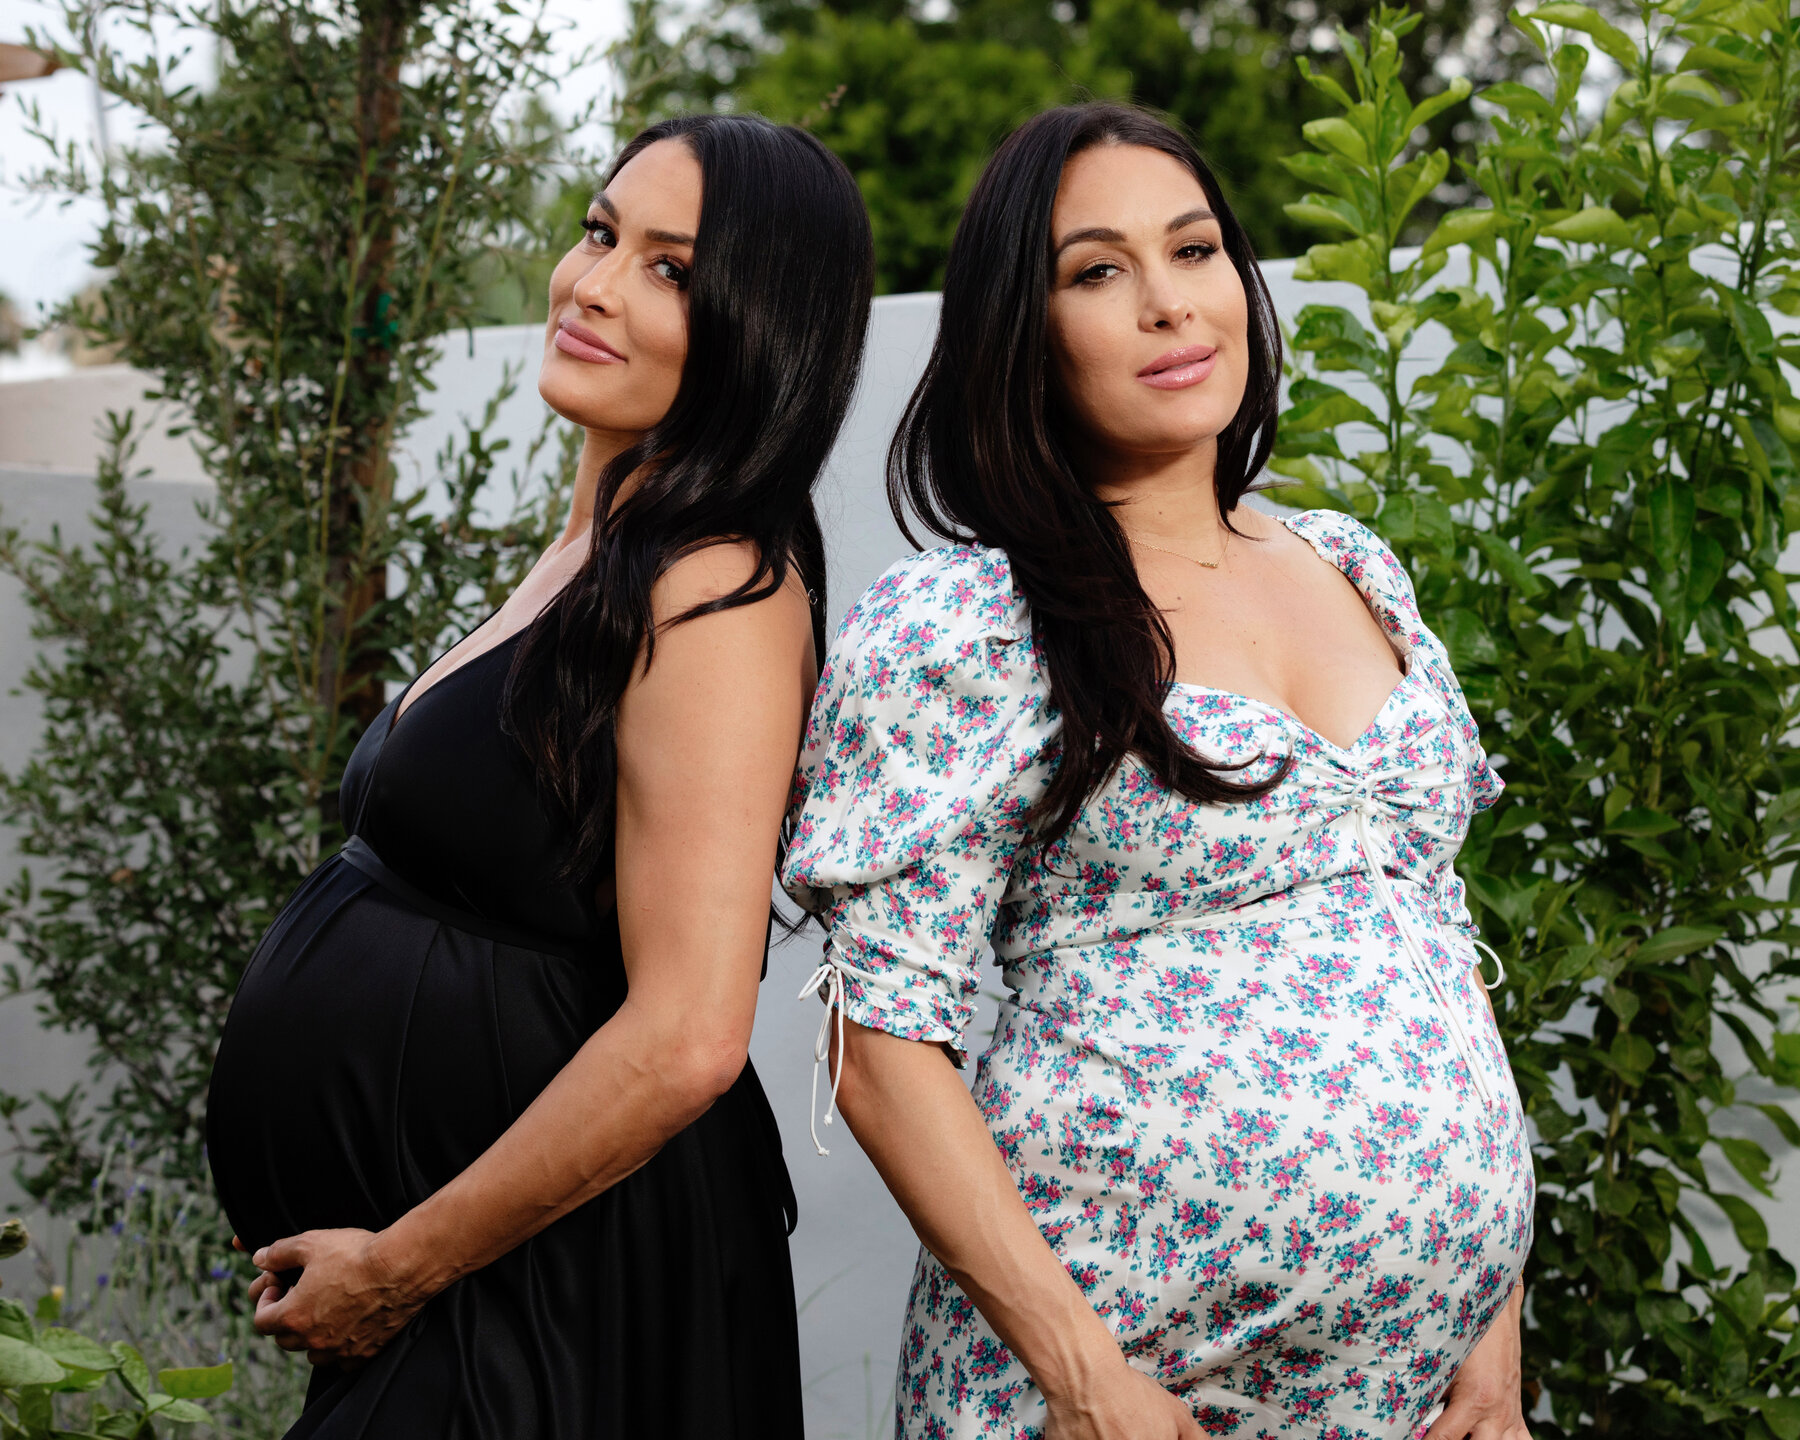 nikki-and-brie-bella-talk-getting-back-into-shape-after-giving-birth-managing-expectations-and-more-on-their-podcast